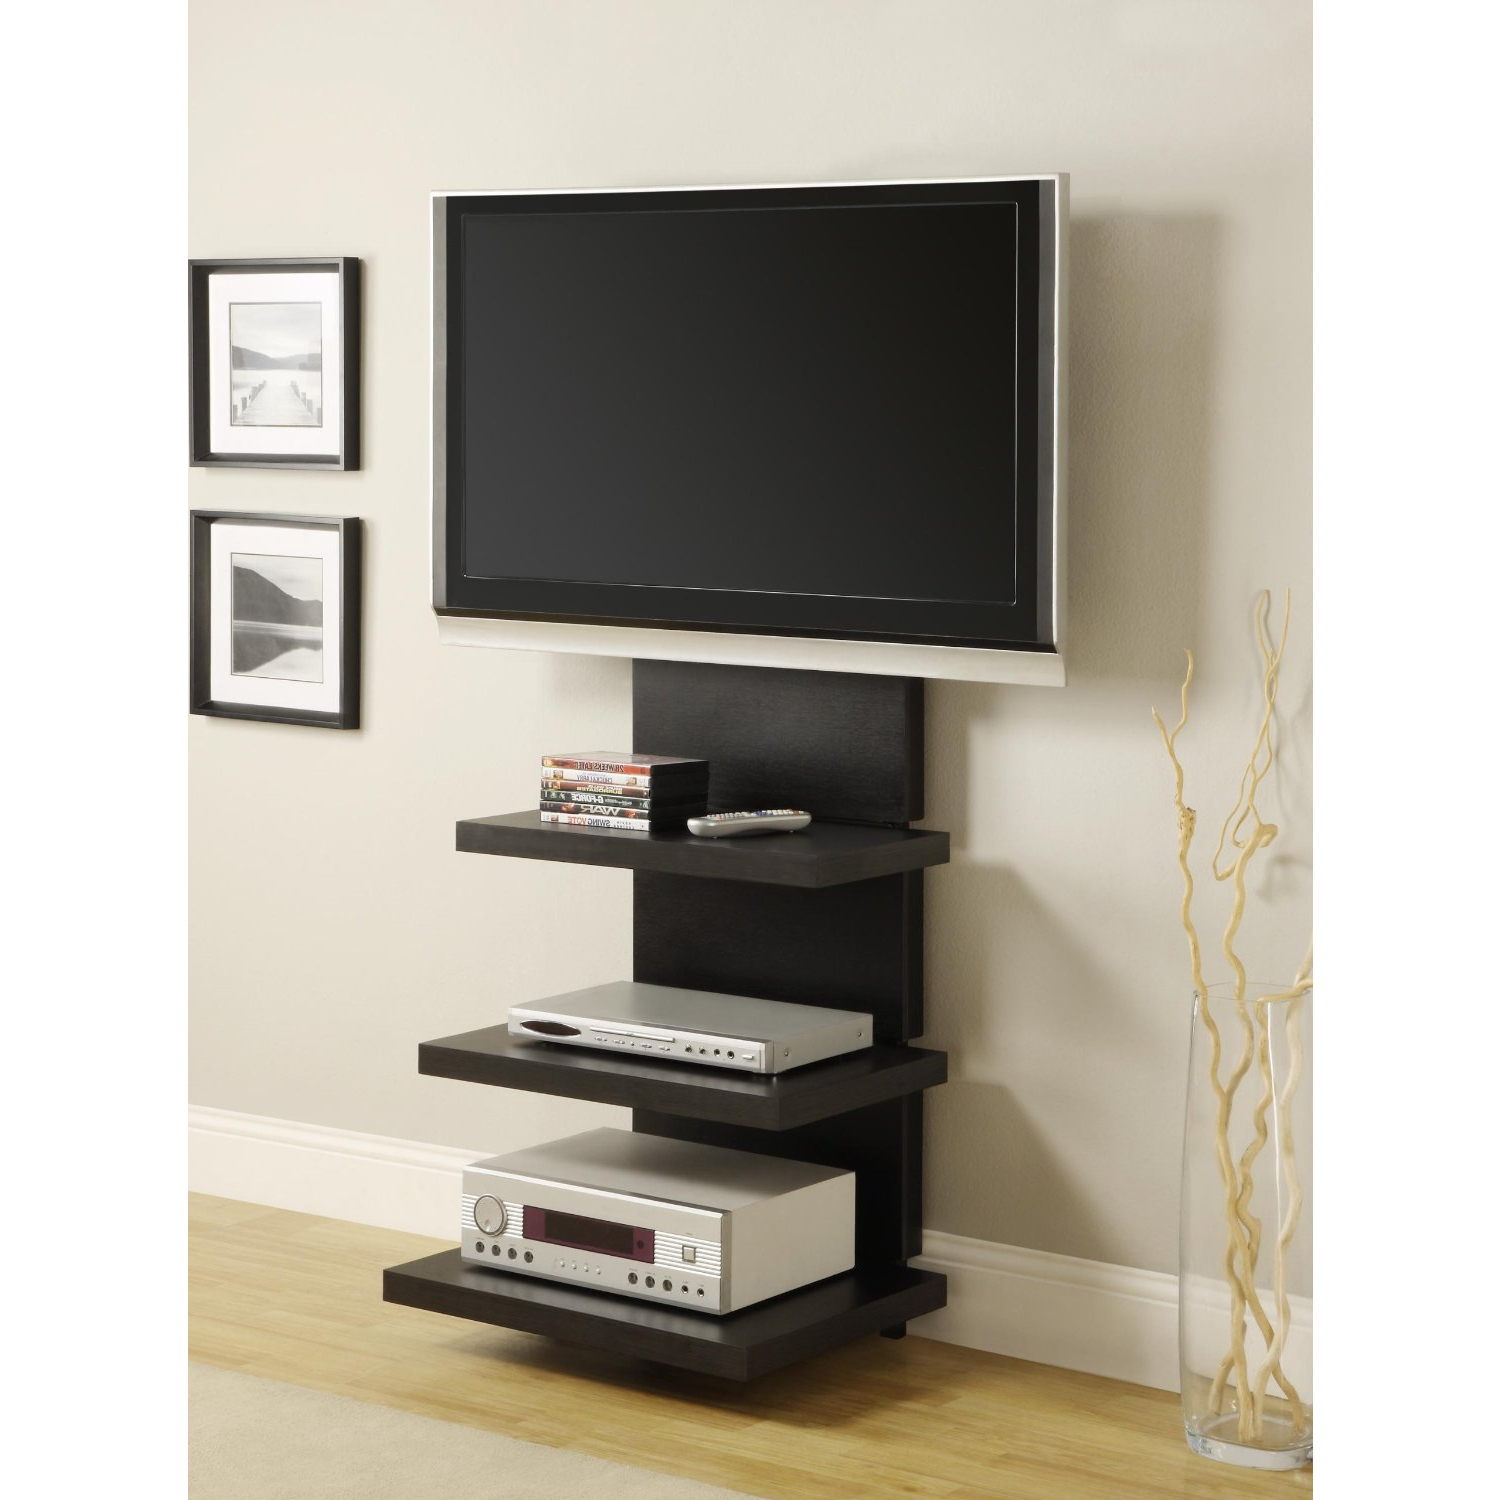 Tall Tv Stands For Flat Screen For Fashionable Bedroom Tall Tv Cabinet With Storage Television Furniture Stands (View 7 of 20)